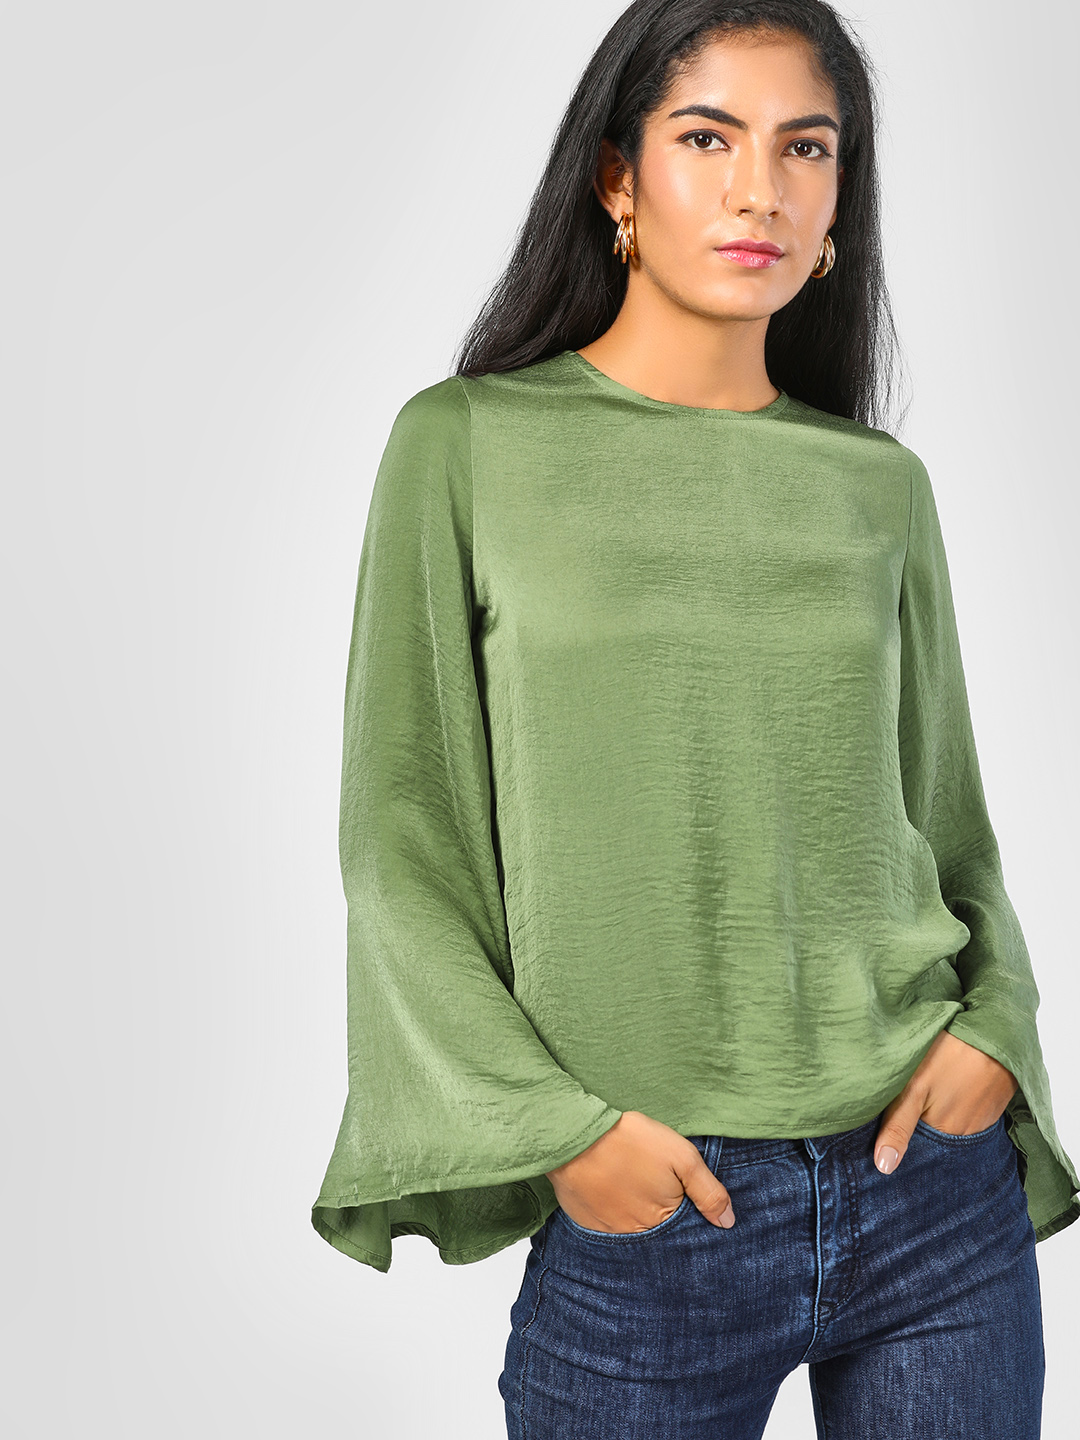 SCULLERS FOR HER Olive Bell Sleeve Blouse 1